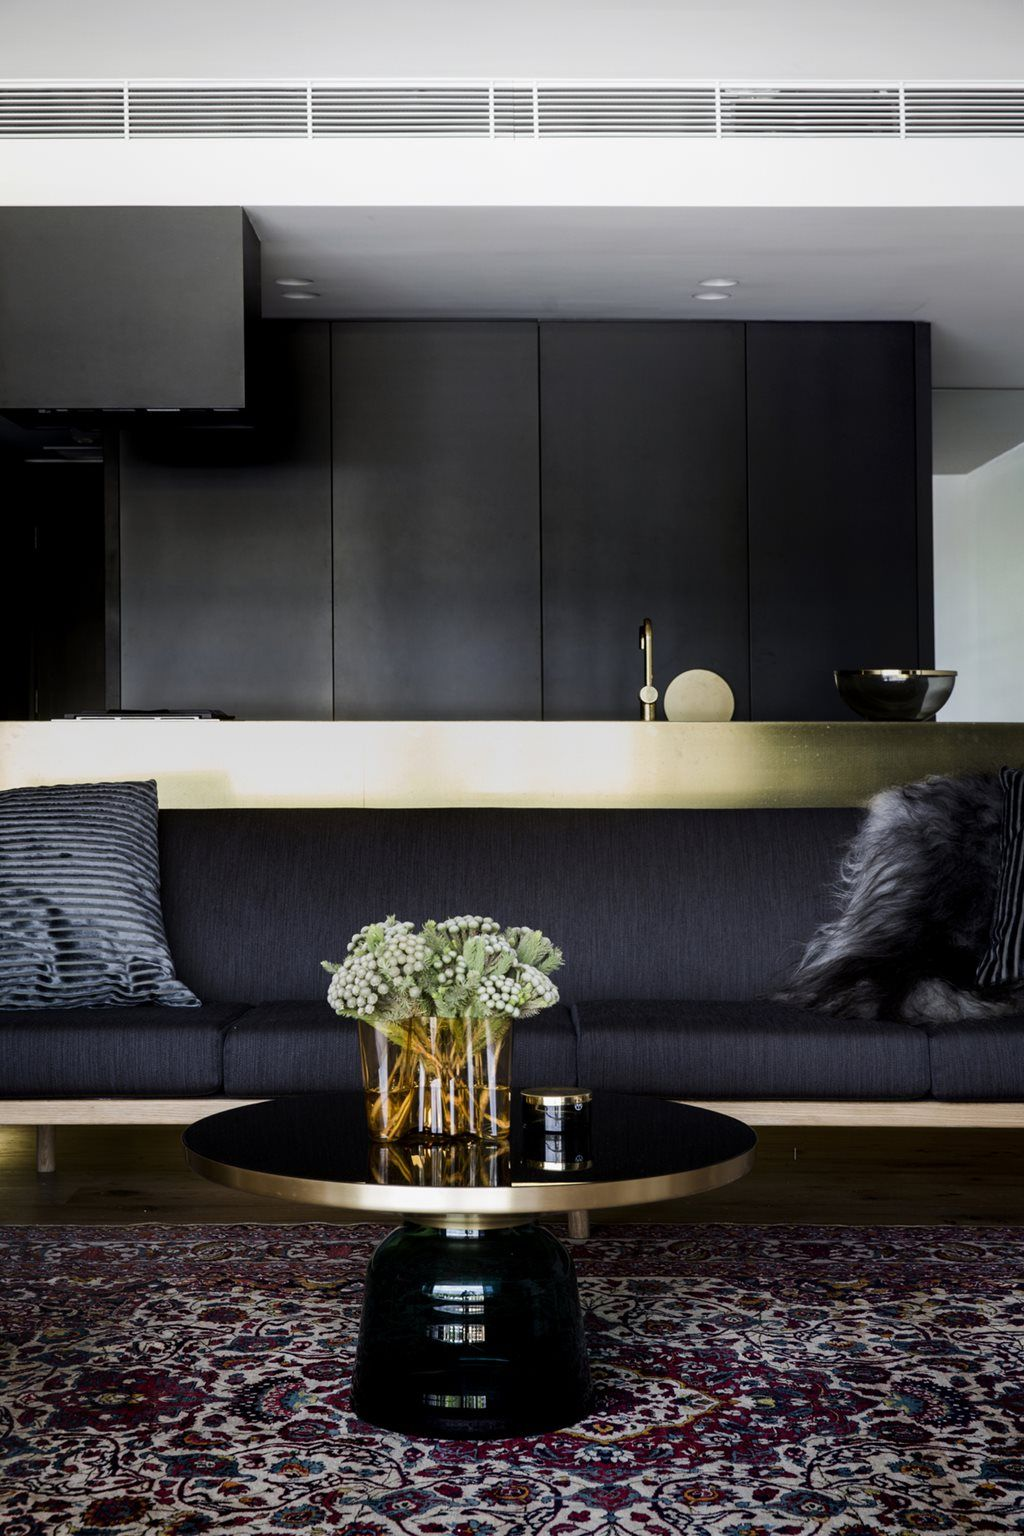 The apartment at woolloomooloo finger wharf on sydney harbour